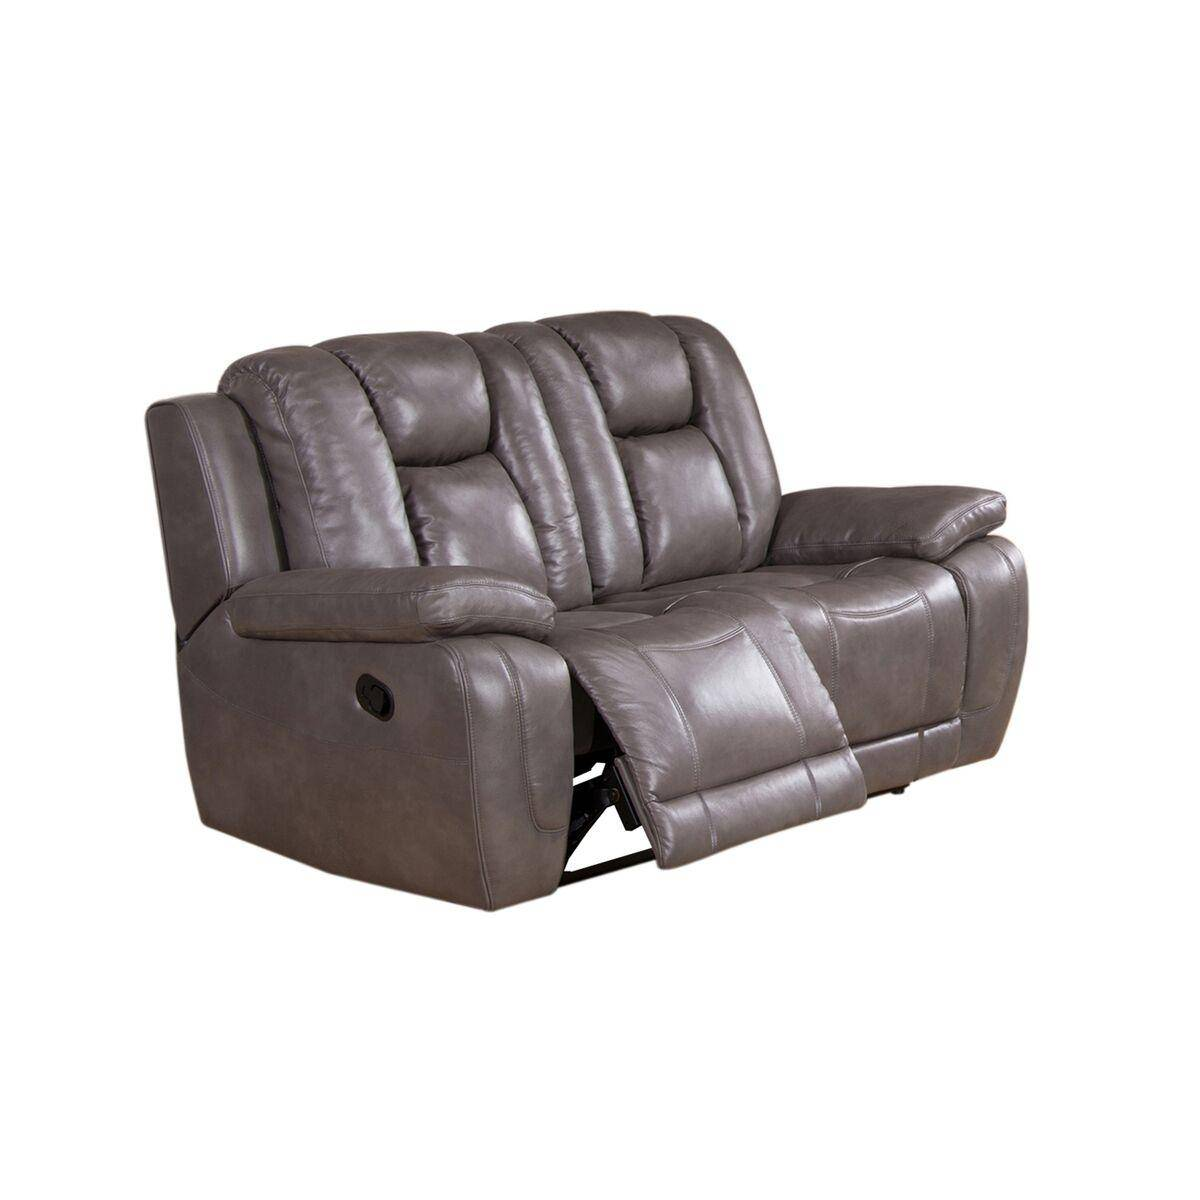 Awe Inspiring Top Grain Leather Smoke Grey Reclining Loveseat Amax Leather Gmtry Best Dining Table And Chair Ideas Images Gmtryco